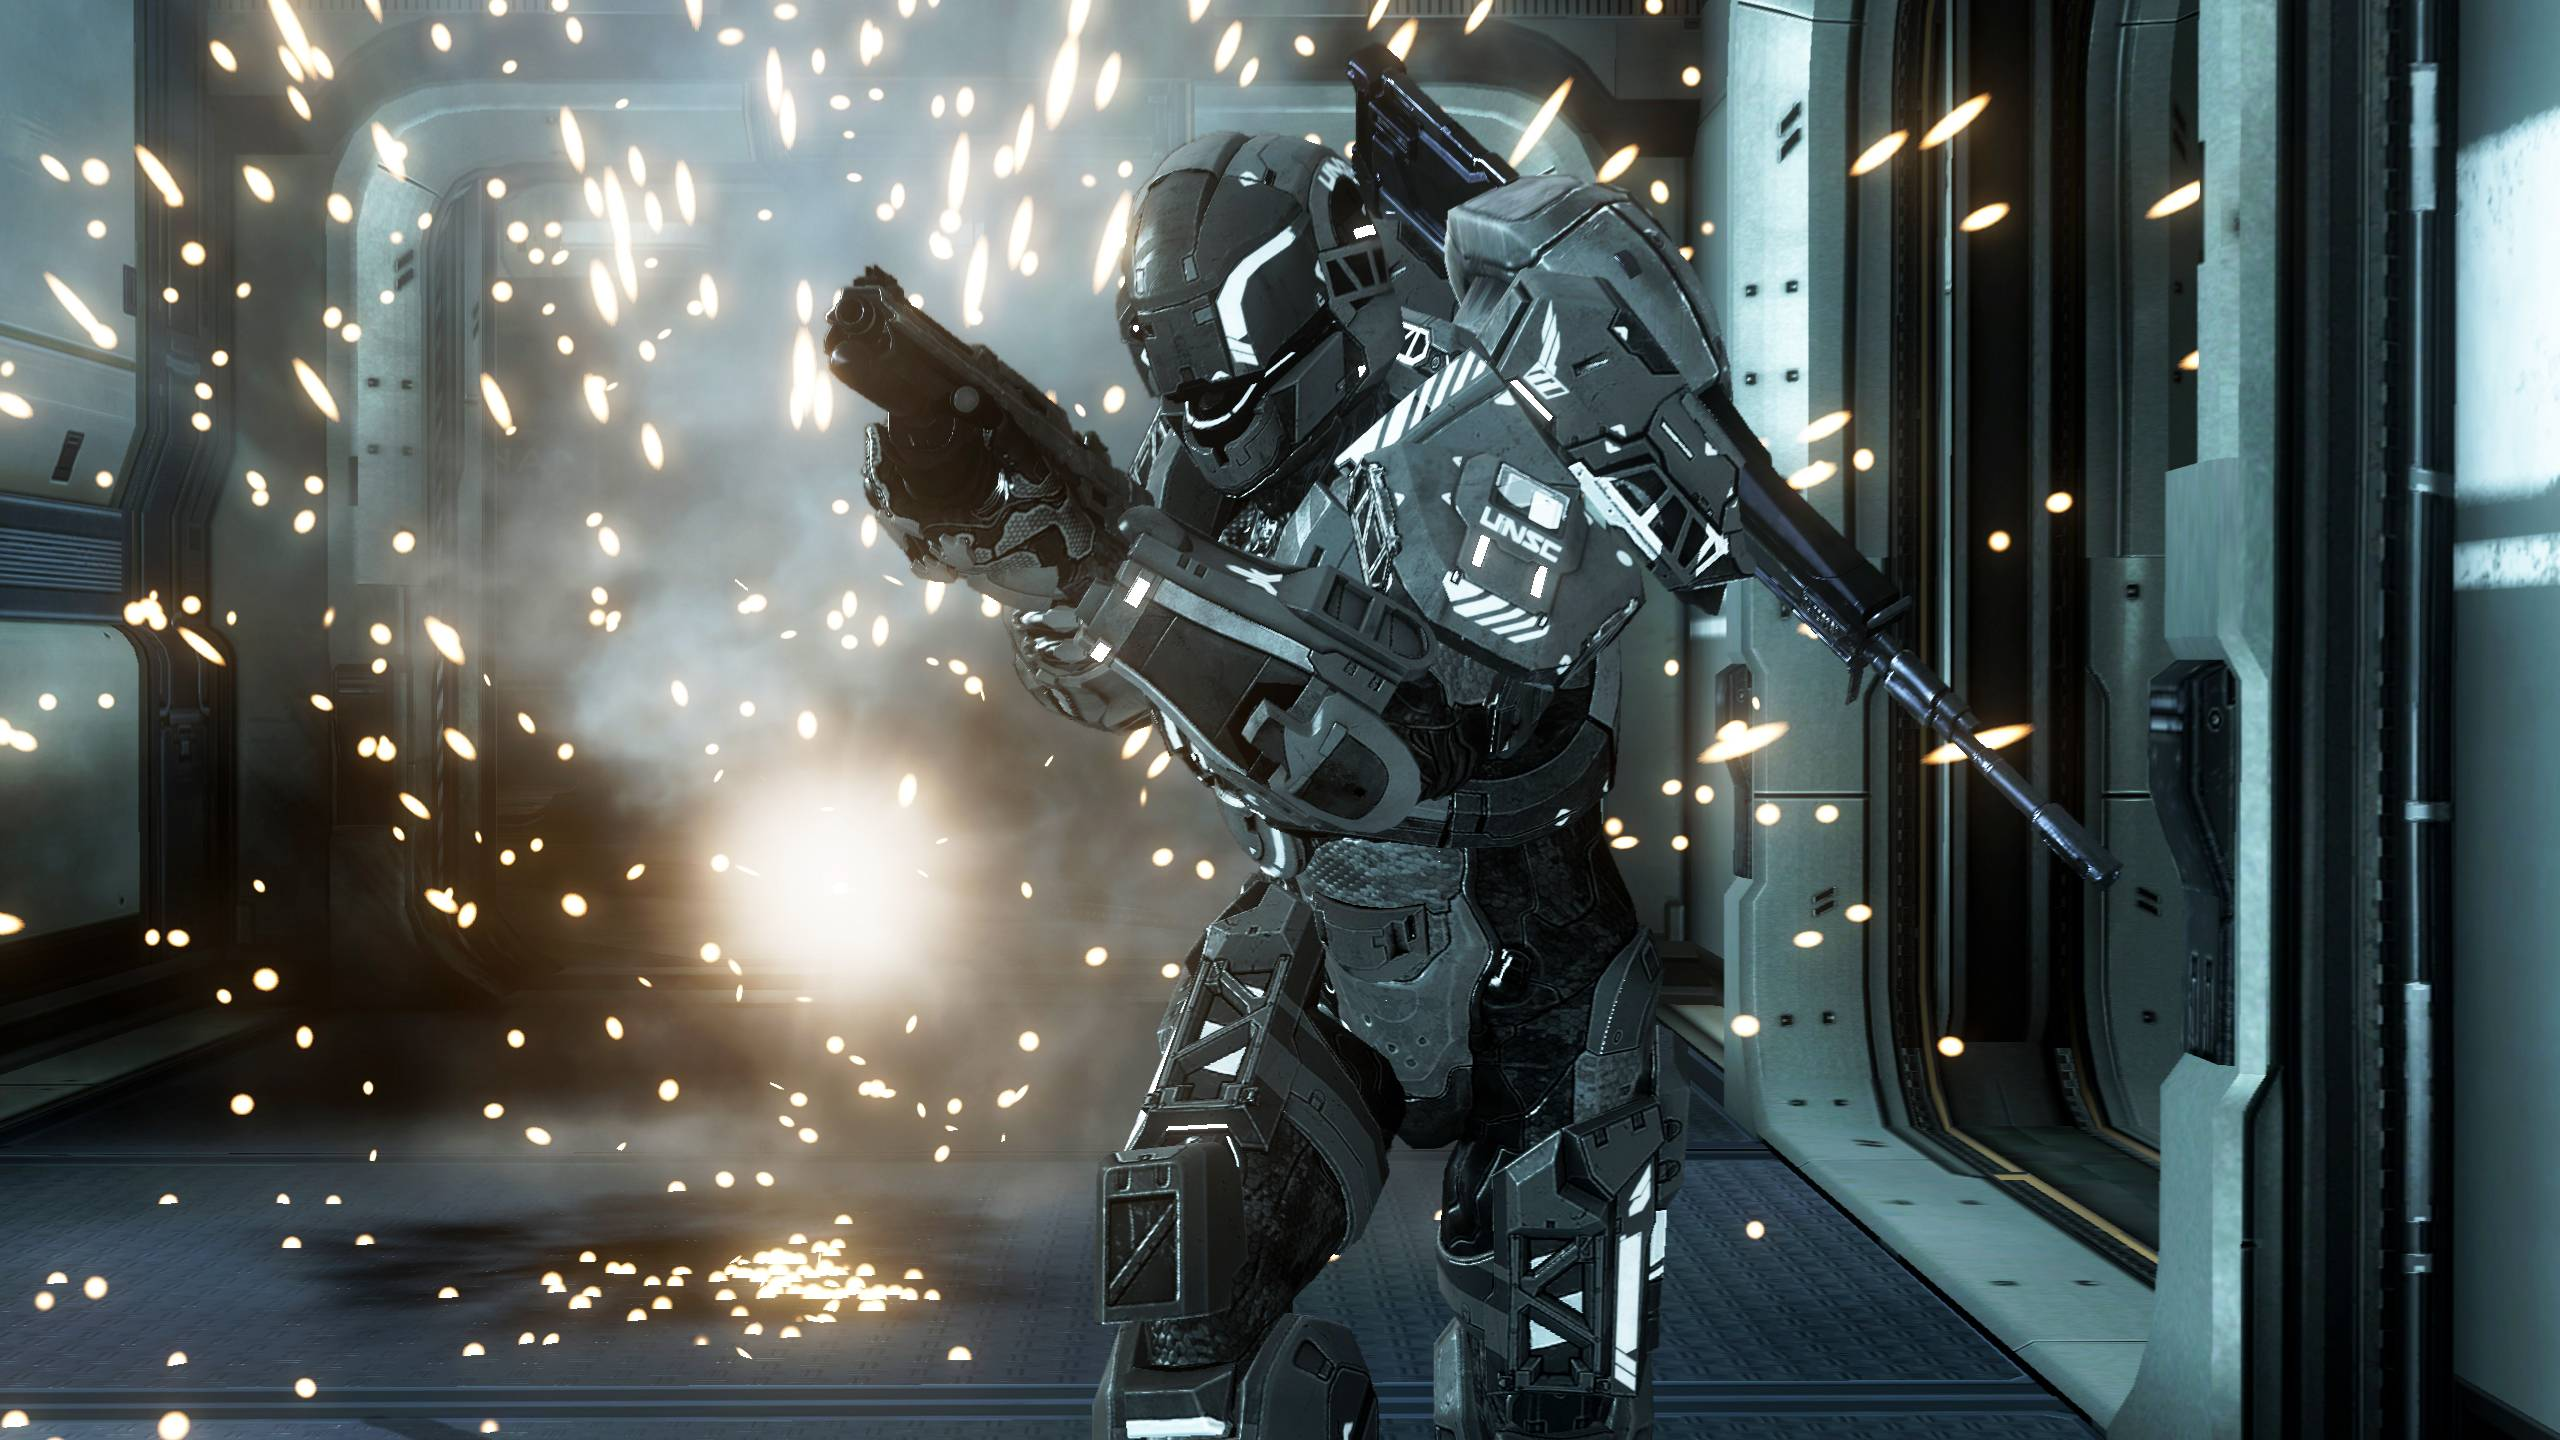 Halo 4 Multiplayer wallpaper Gallery 2560x1440